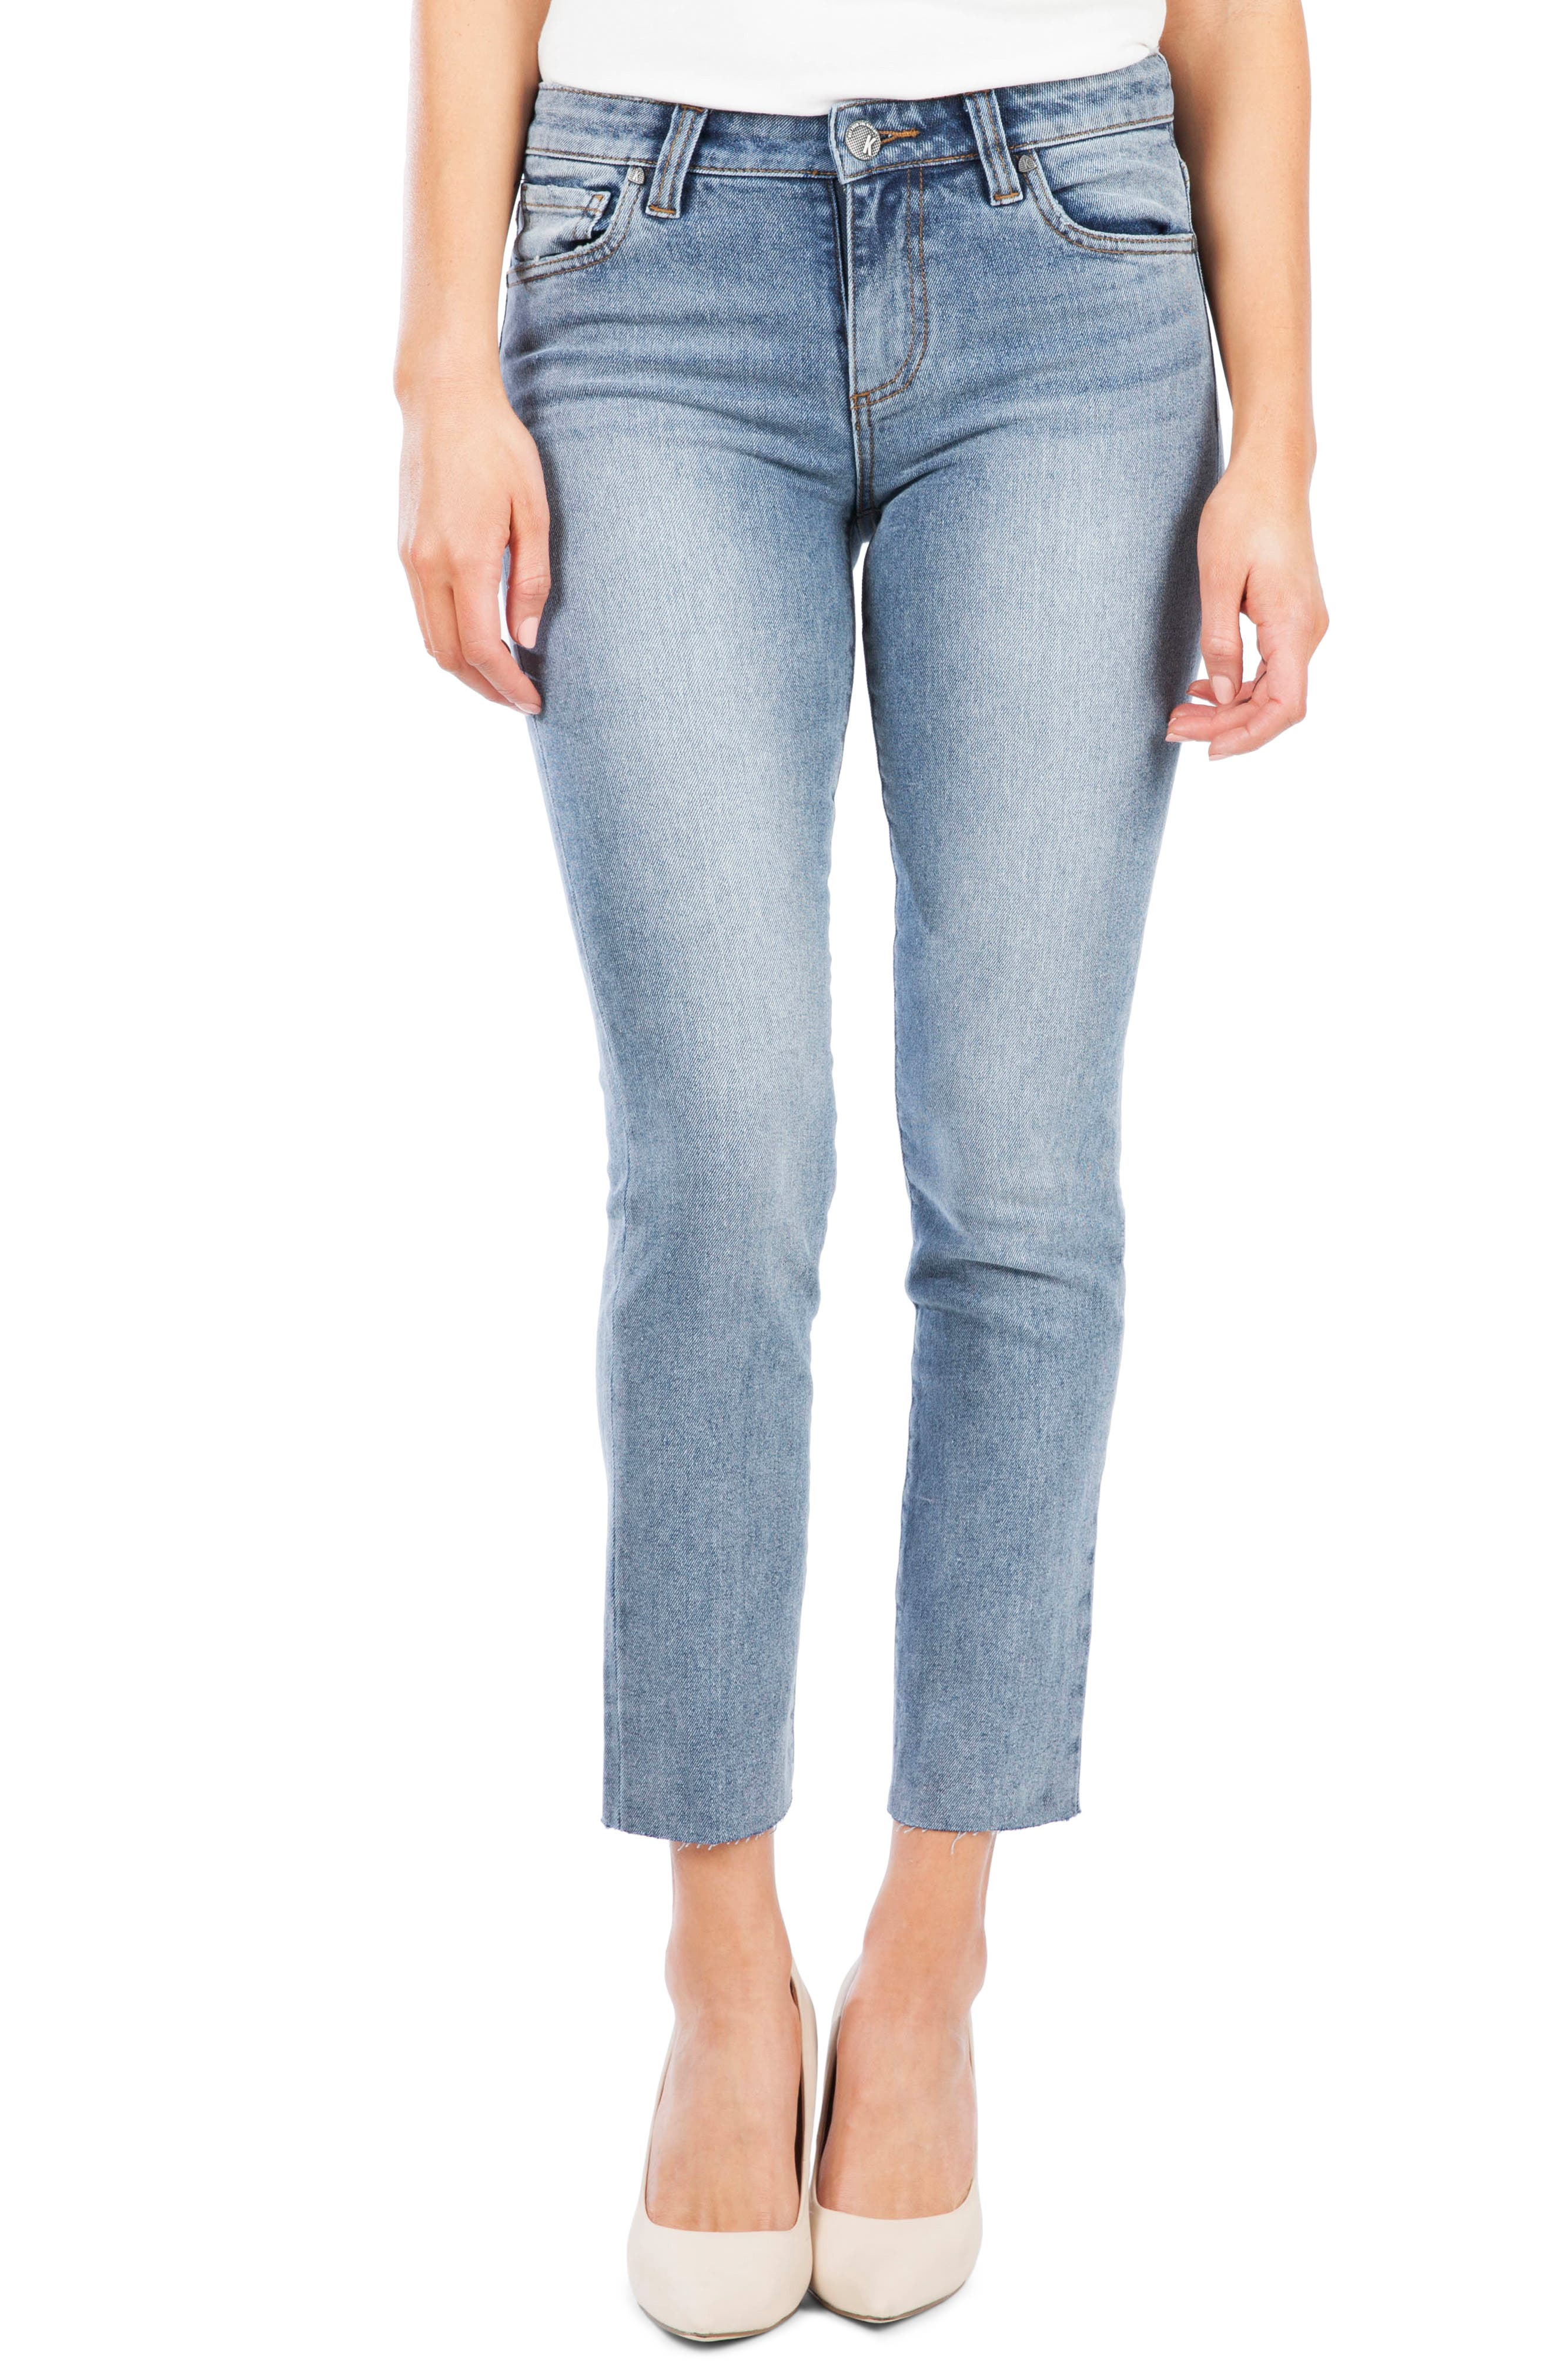 Kut From The Kloth Reese Ankle Slim Jeans, Blue